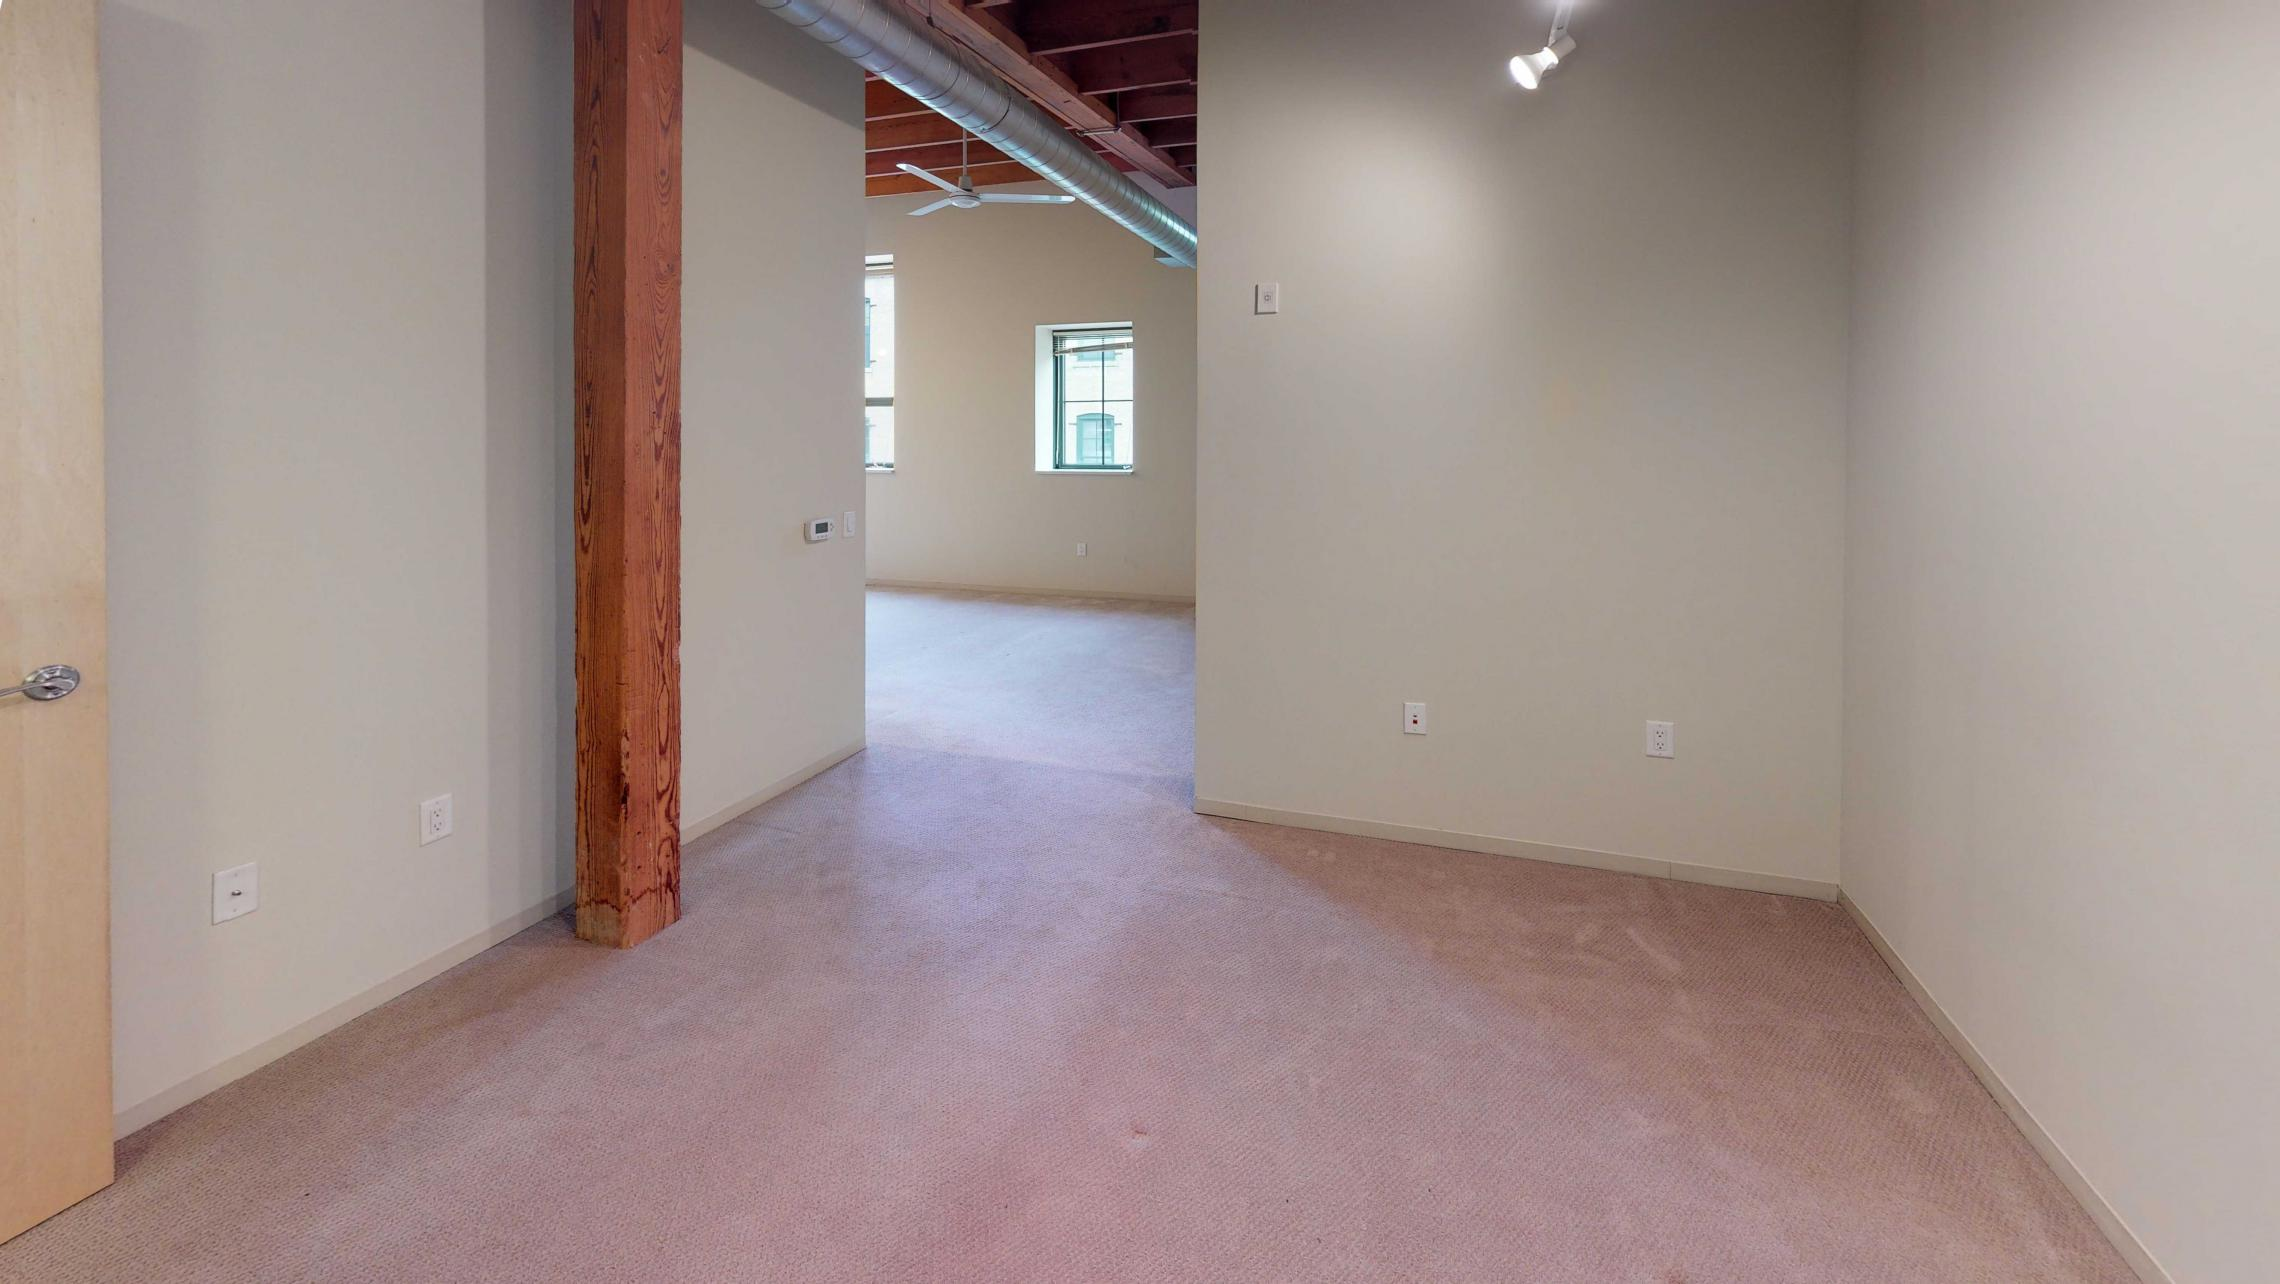 Tobacco-Lofts-Apartment-W219-Studio-Downtown-Madison-Historic-Brick-Exposures-Living-Room-Yards-Bedroom.jpg